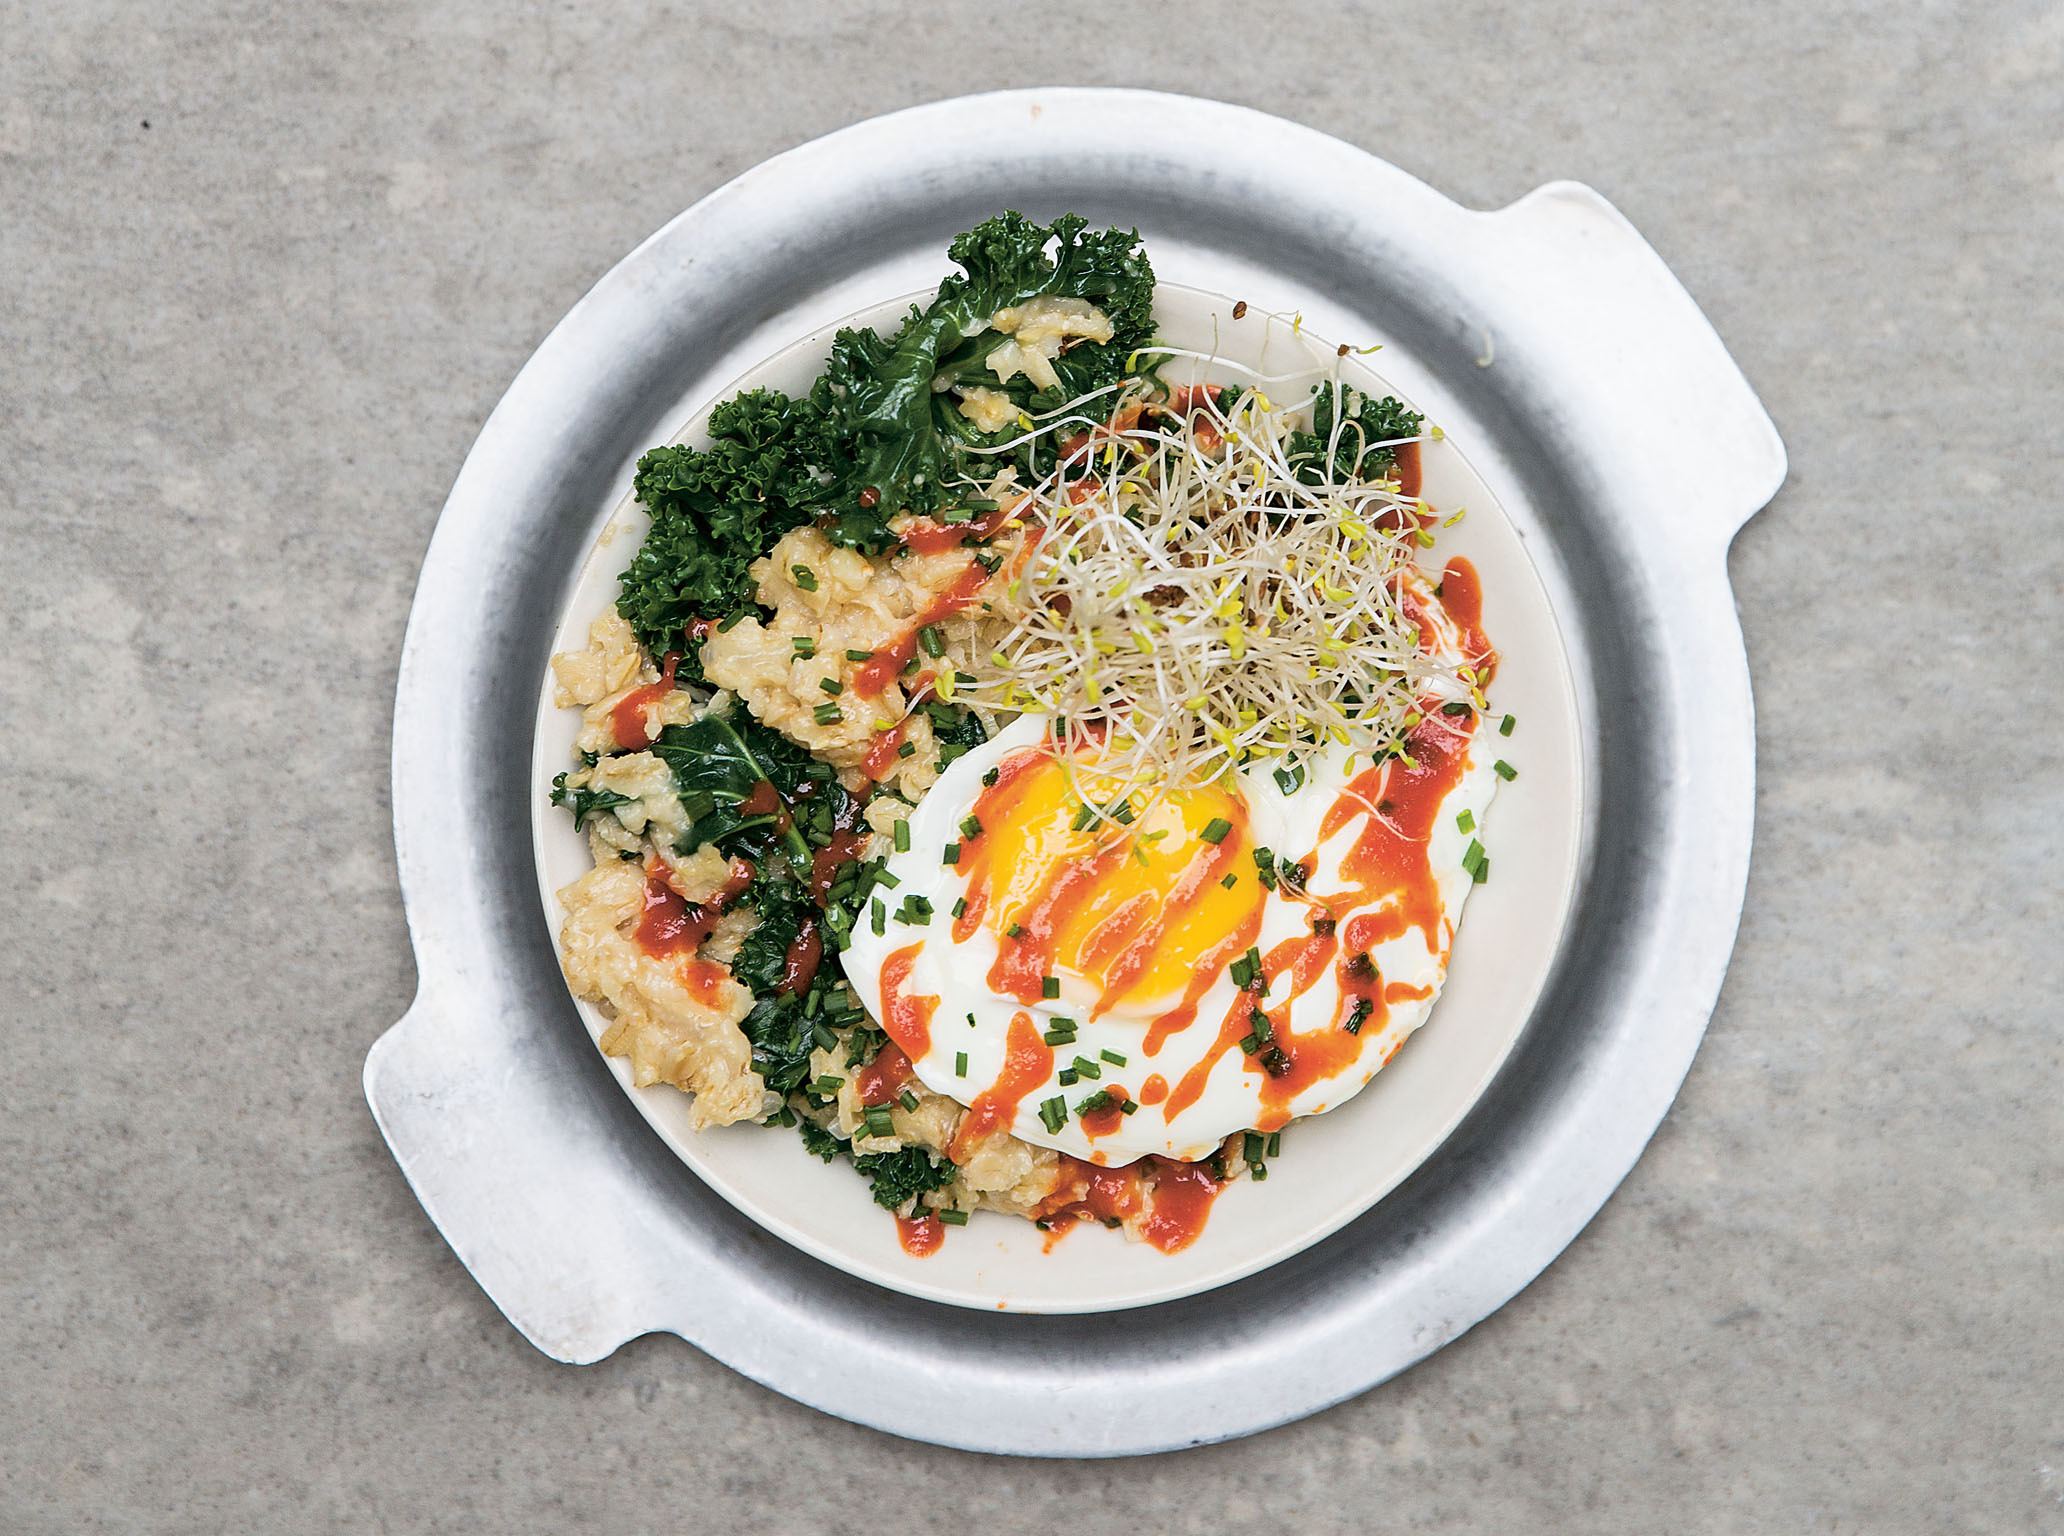 Egg and spinach at 26 Grains